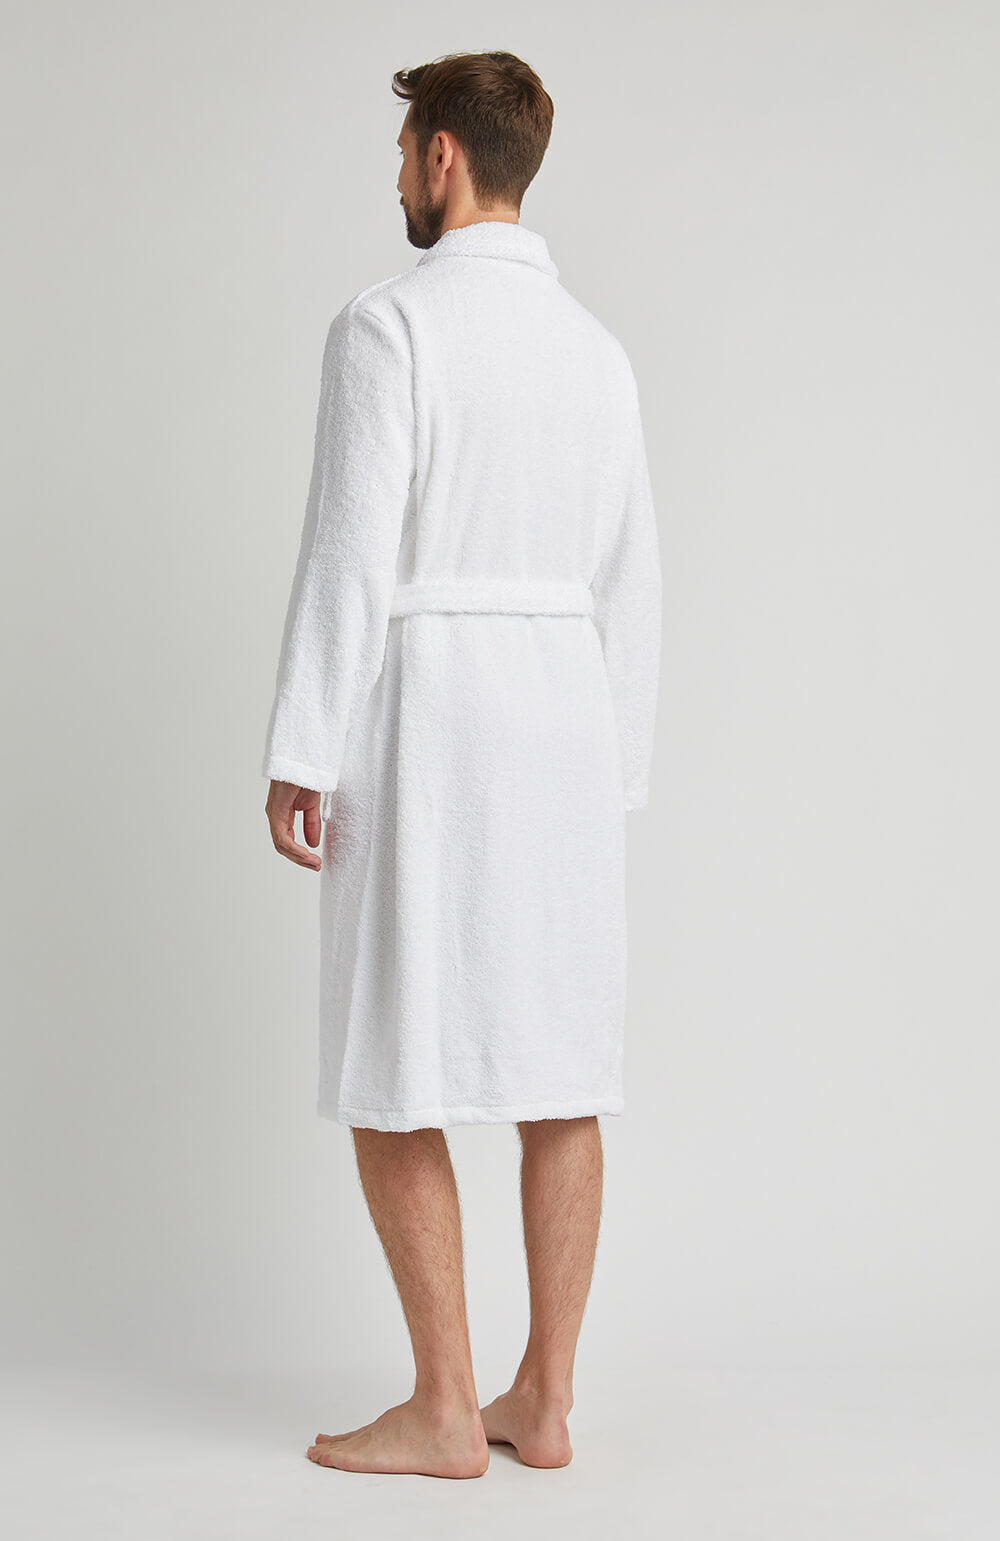 Towelling Robe White | Bonsoir of London